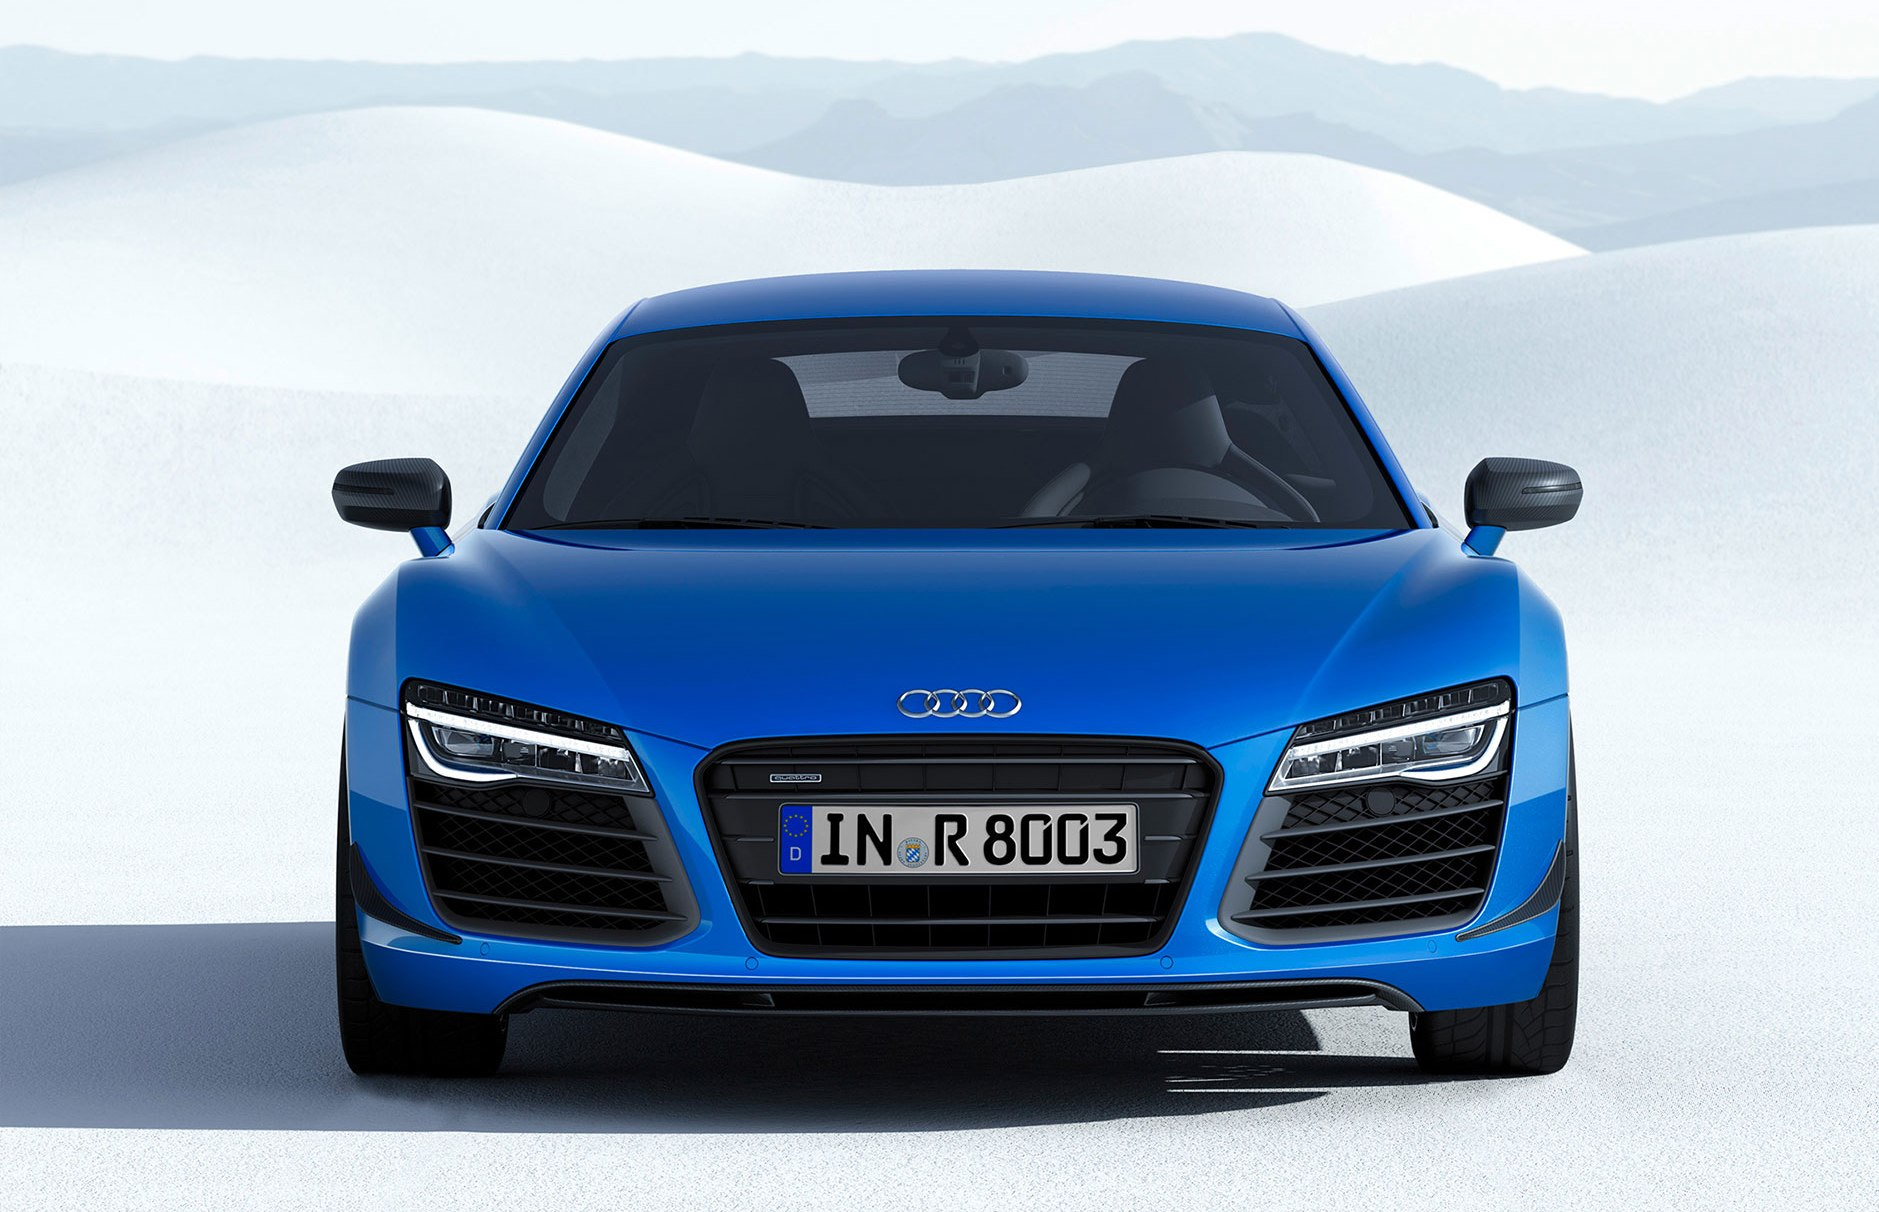 Audi R8 LMX with laser headlamps